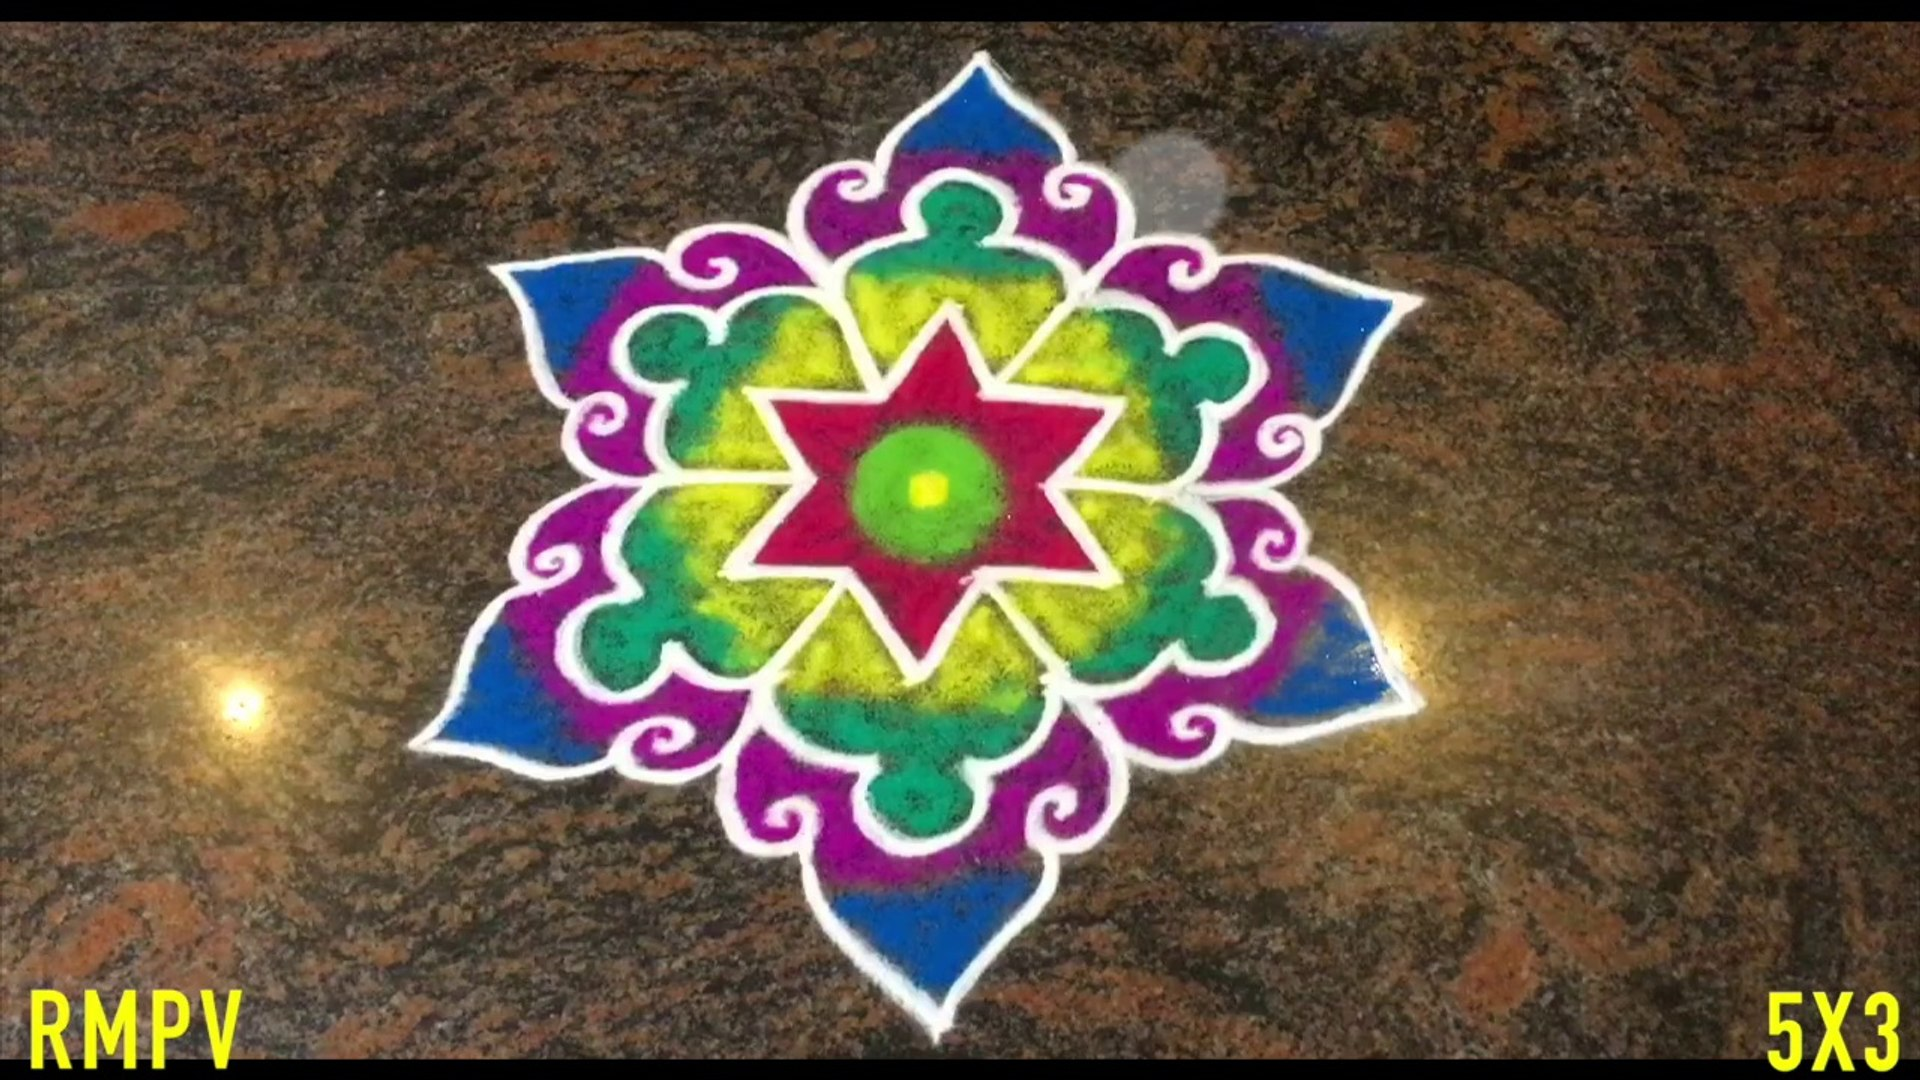 Simple Flower Rangoli Design With Colours And Dots 5x3 For Festivals Competitions Easy Kolam Simple Daily Rangoli For Pooja Room Latest Kolam With Colours Easy Rangoli Simple Rangoli